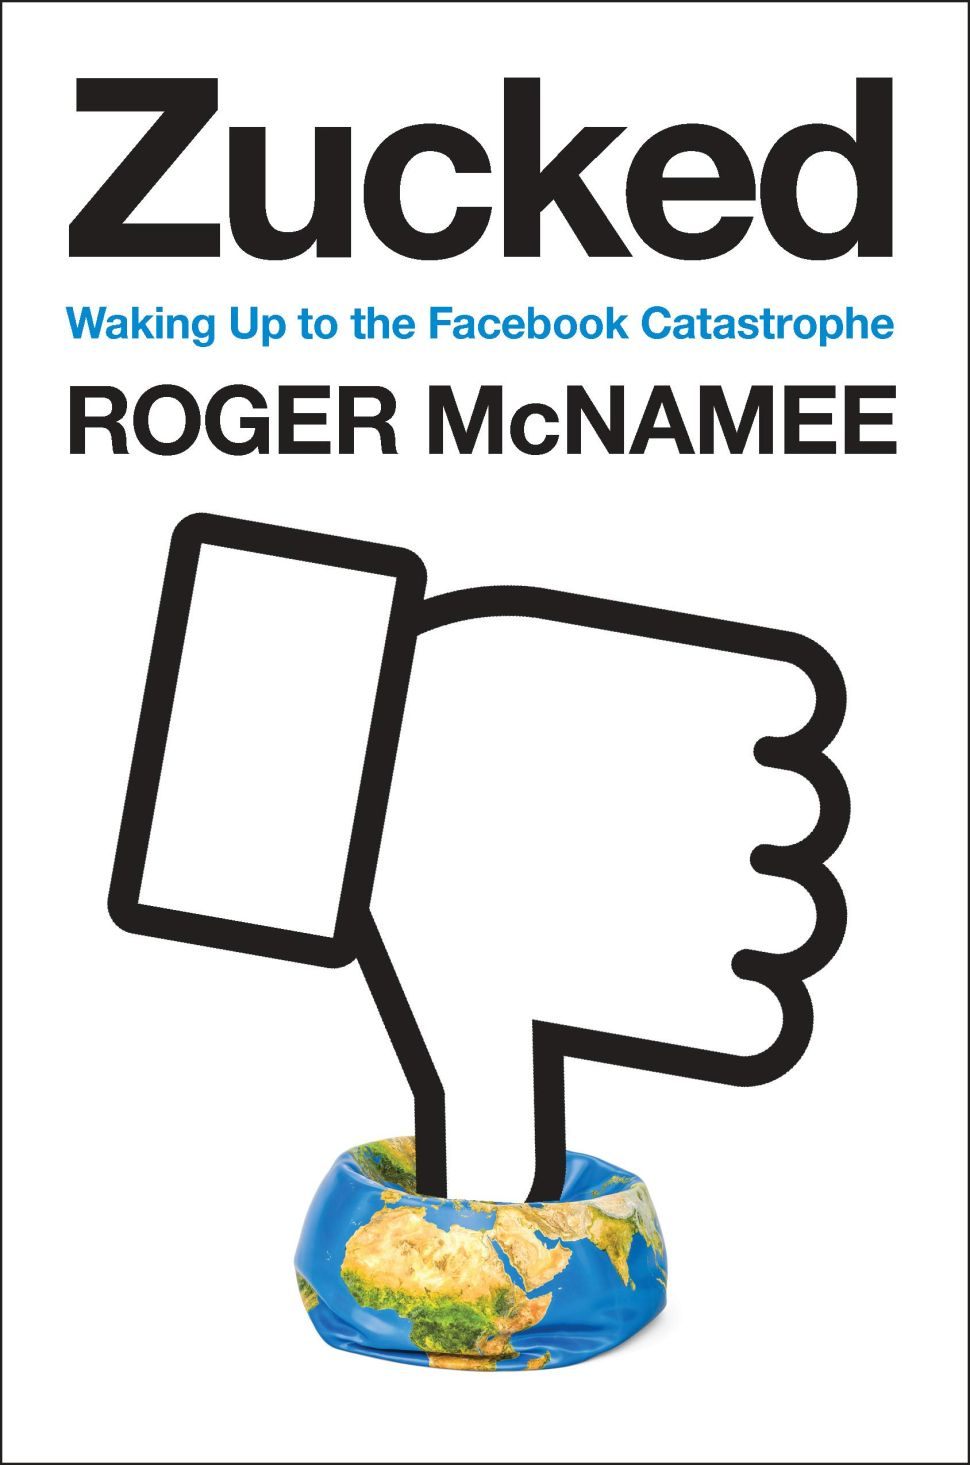 'Zucked' by Roger McNamee.